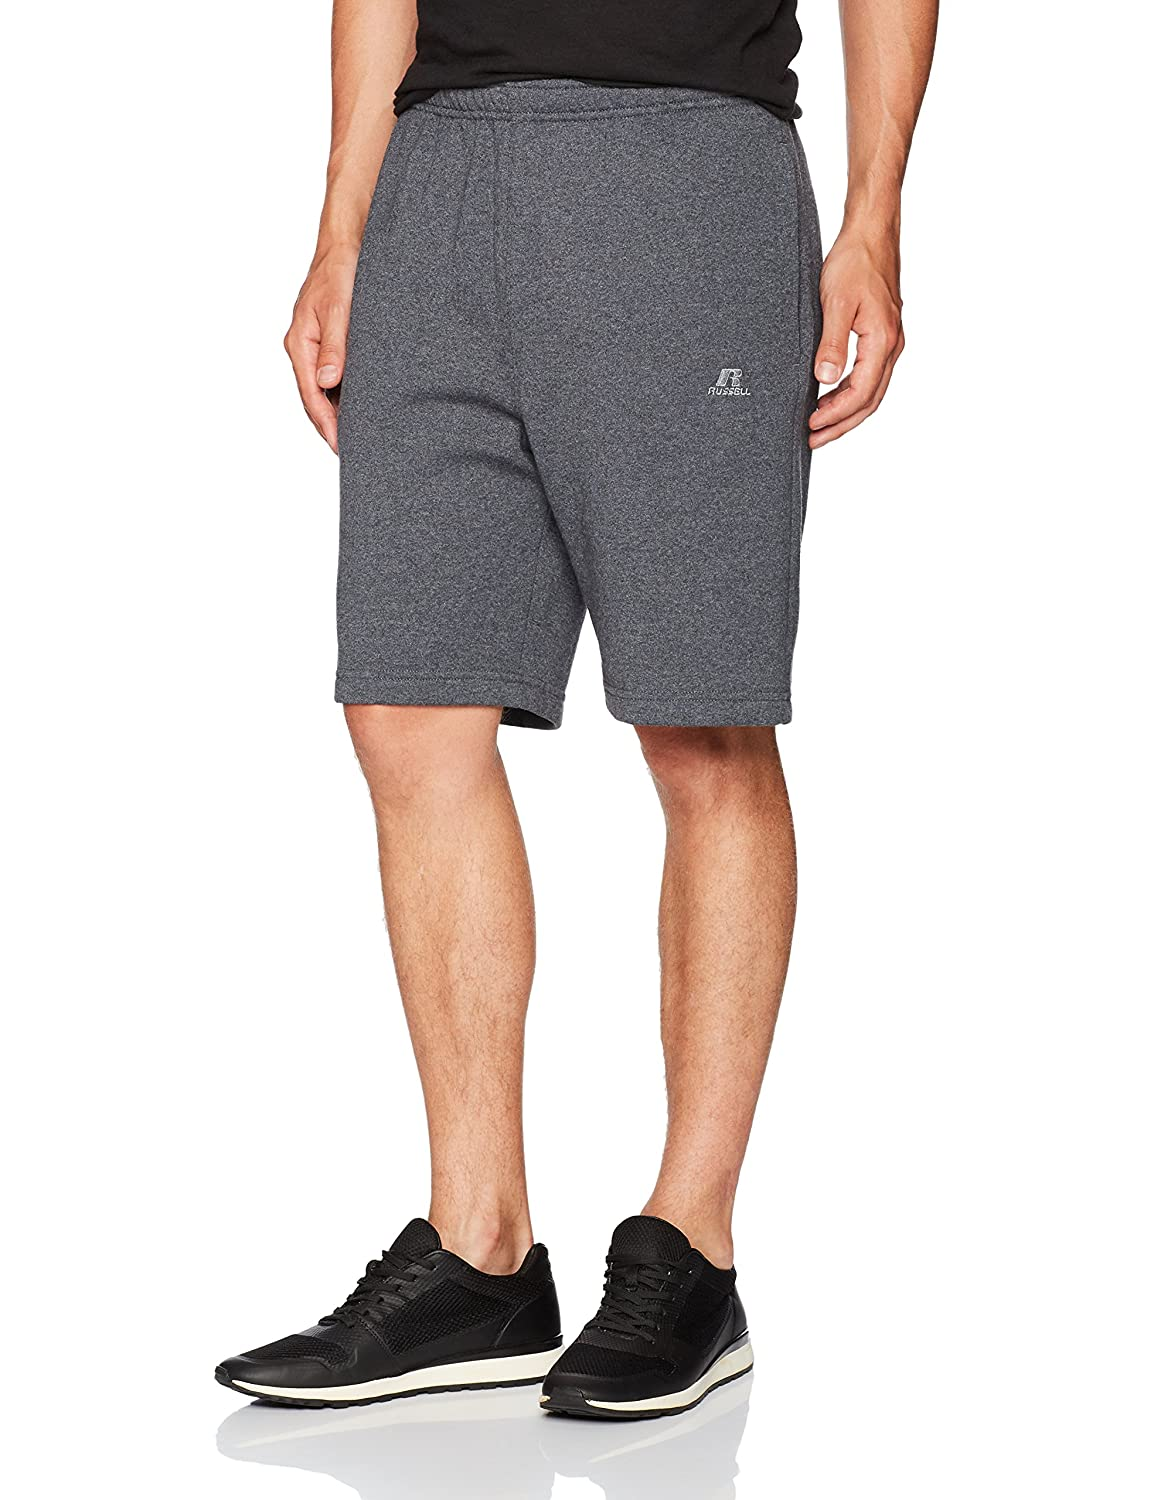 Russell Athletic Mens Standard Dri-Power Fleece Short Pockets 7FSHBM0